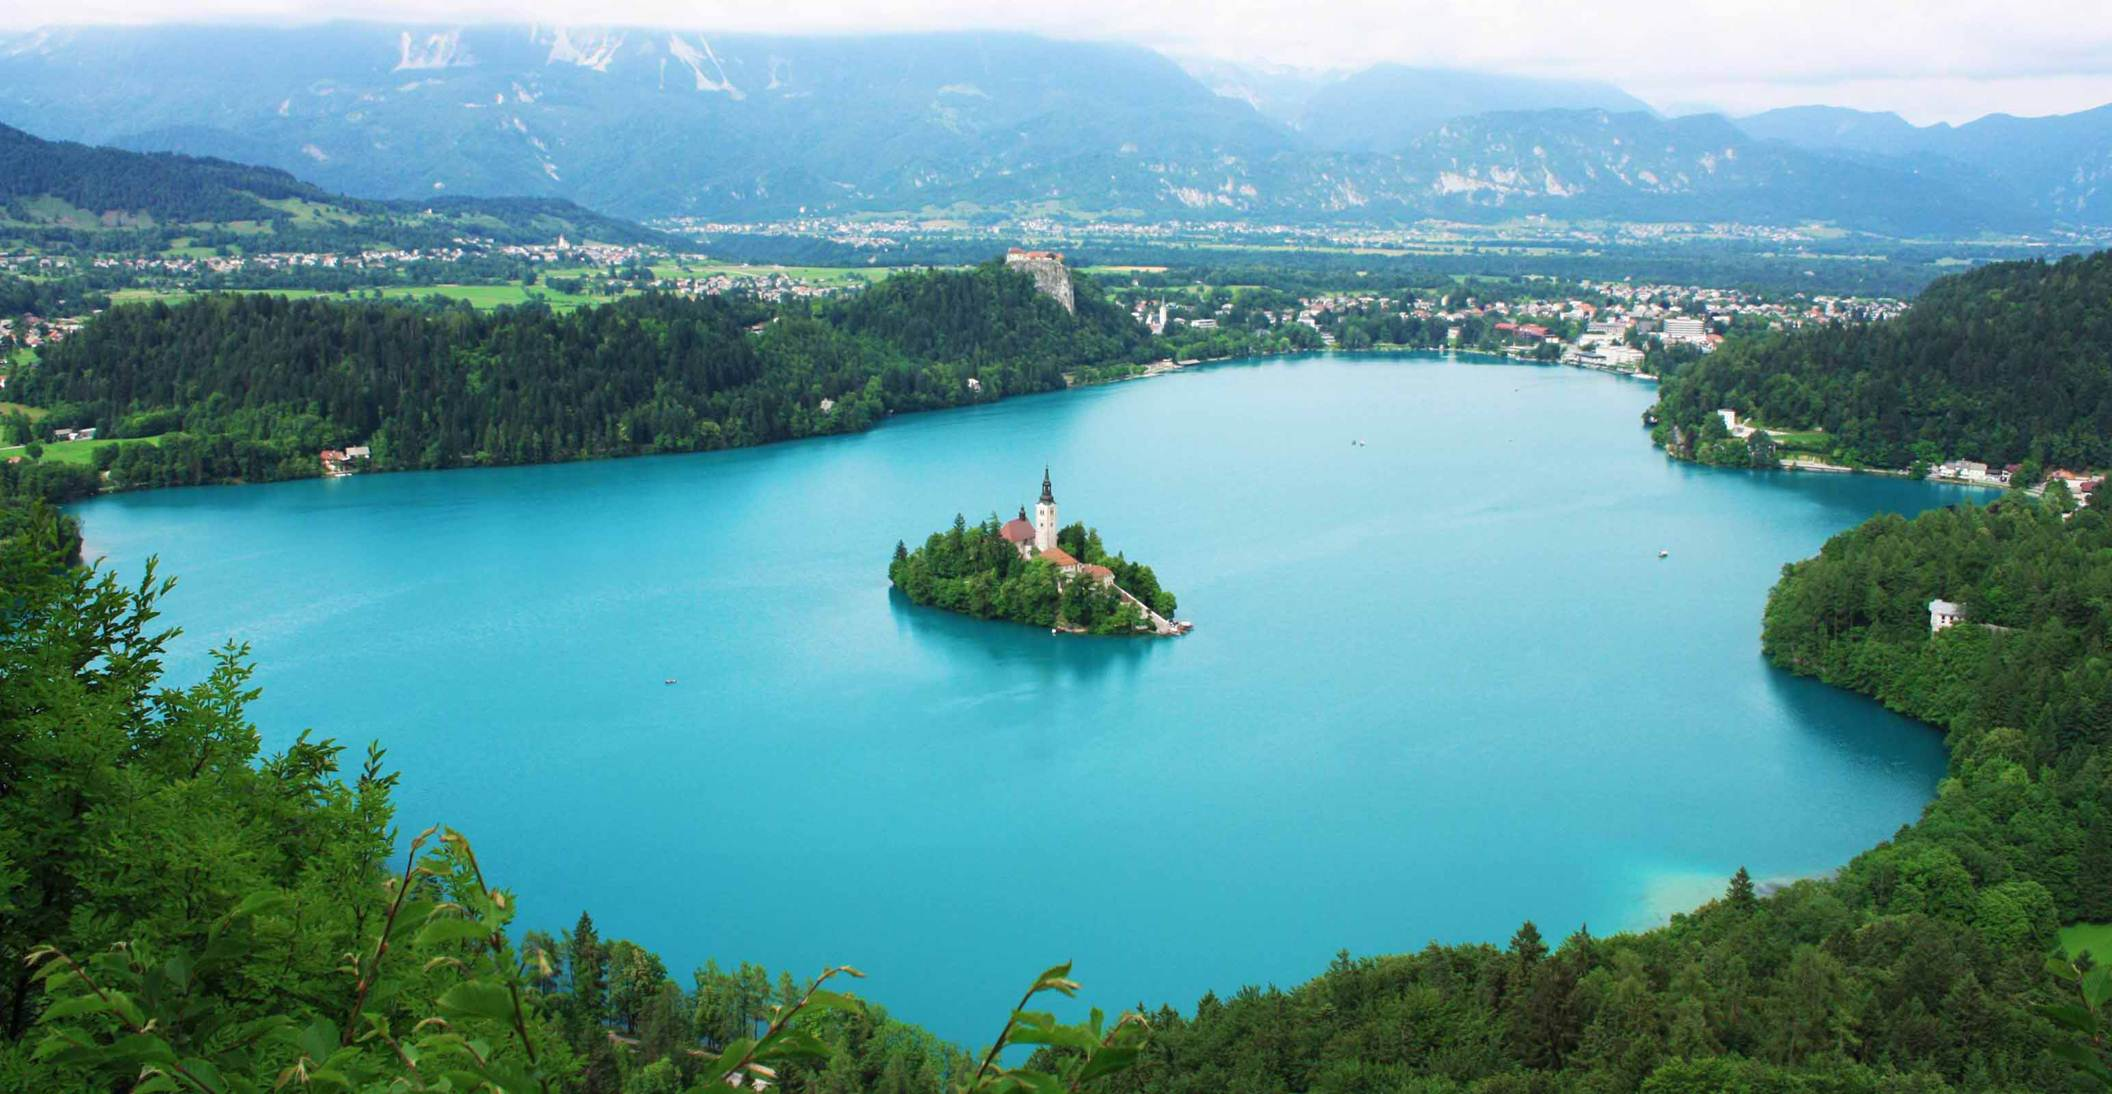 vista do lago Bled